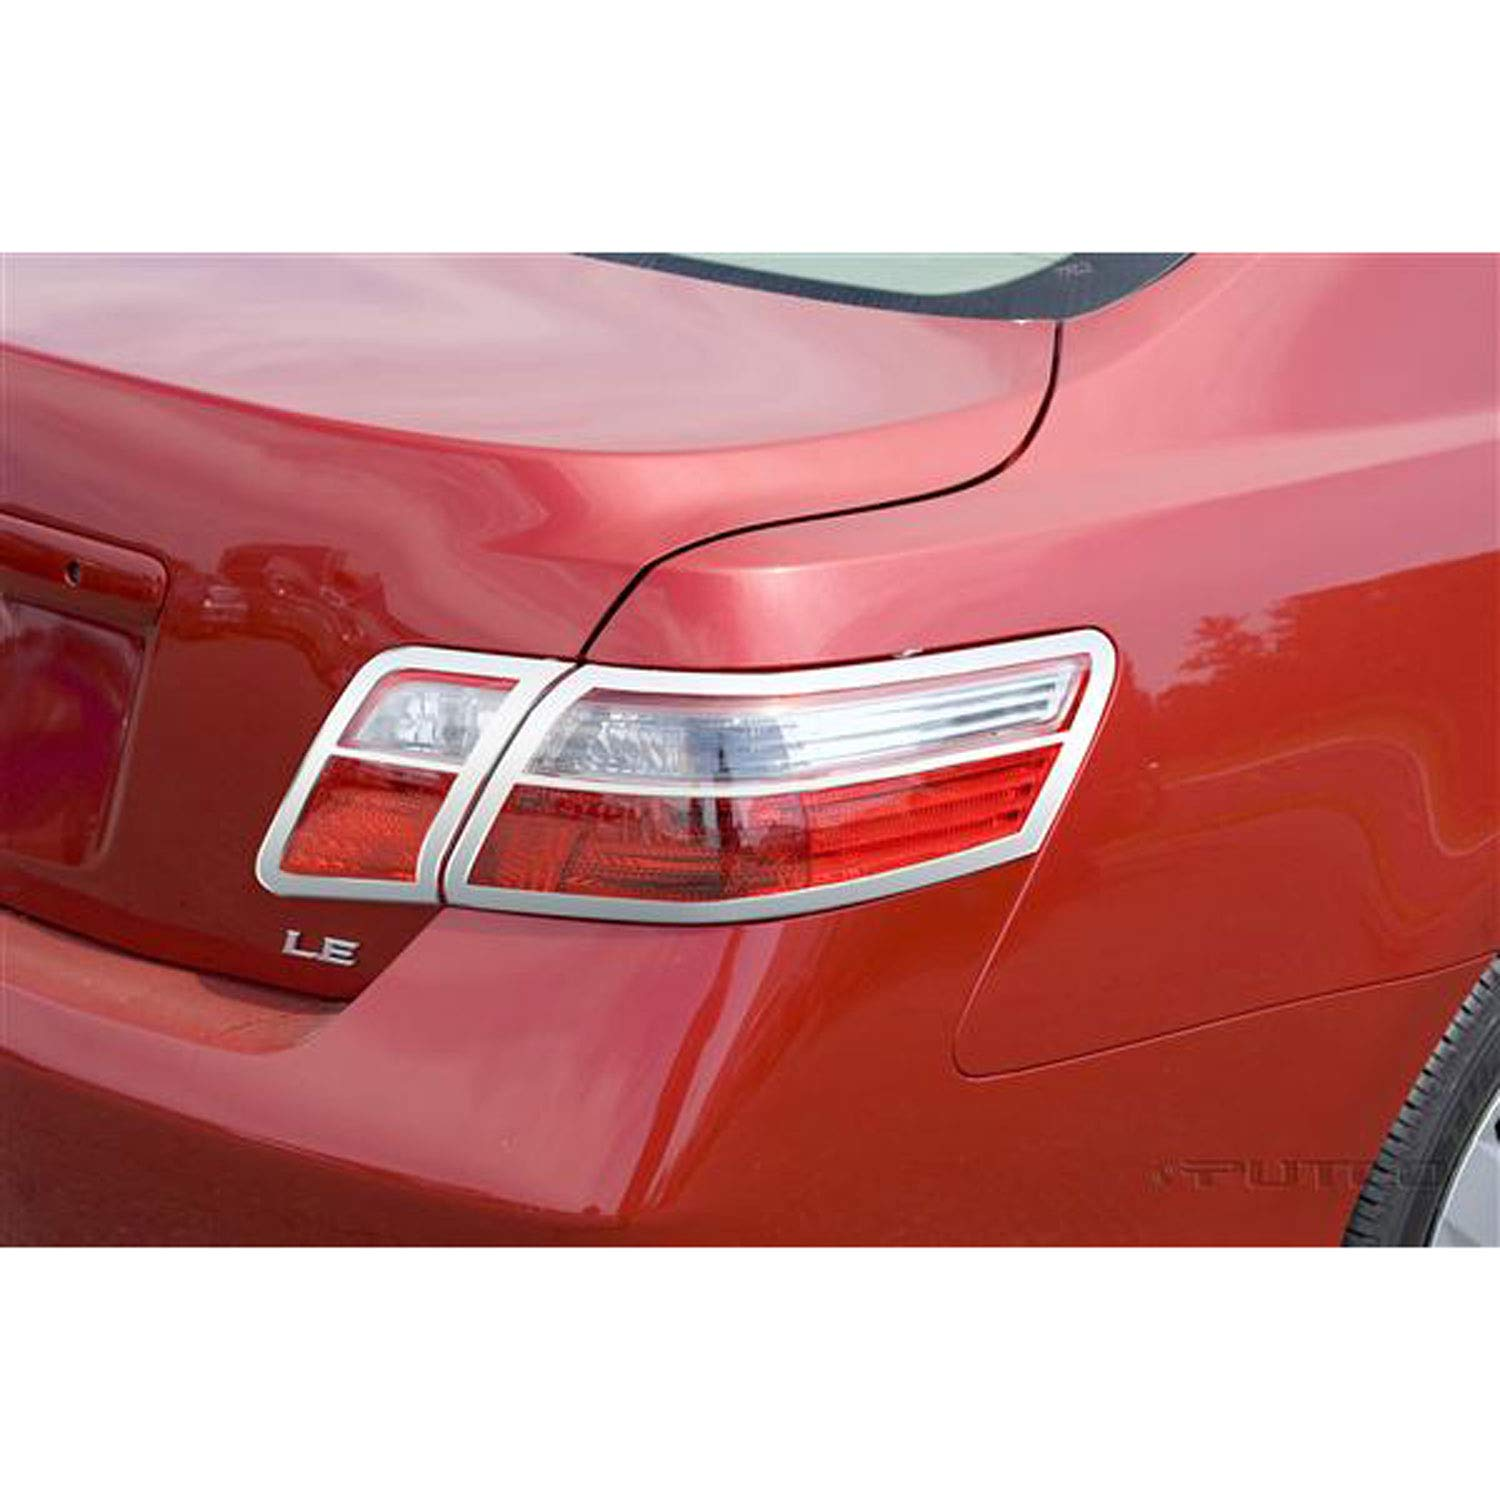 Putco 400855 Chrome Tail Light Cover for Select Toyota Models by Putco (Image #1)